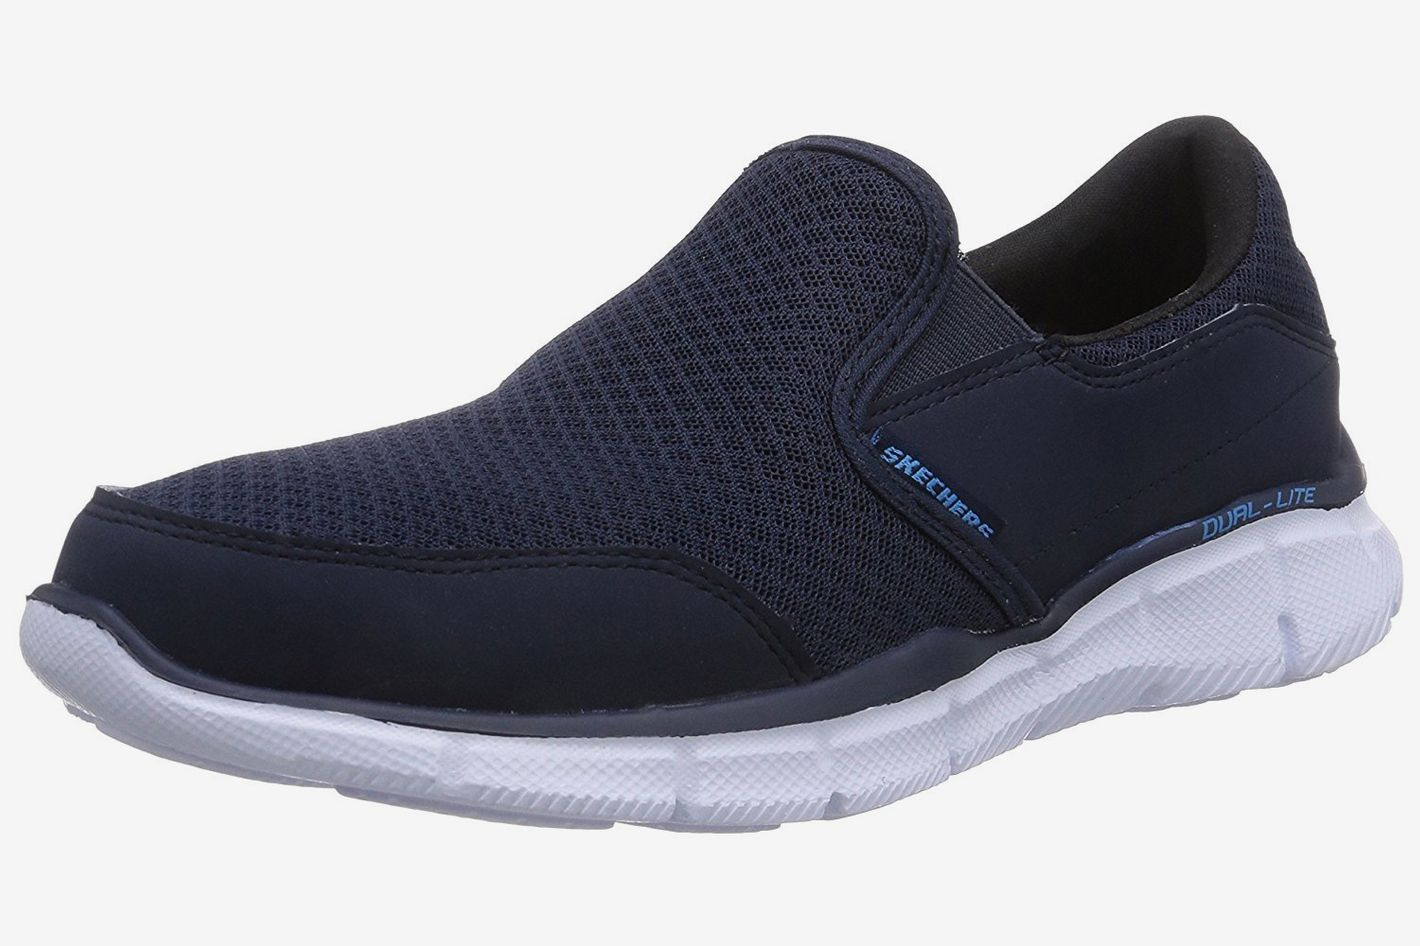 san francisco dc94d e61a6 Skechers Equalizer Slip-On Sneaker. ""